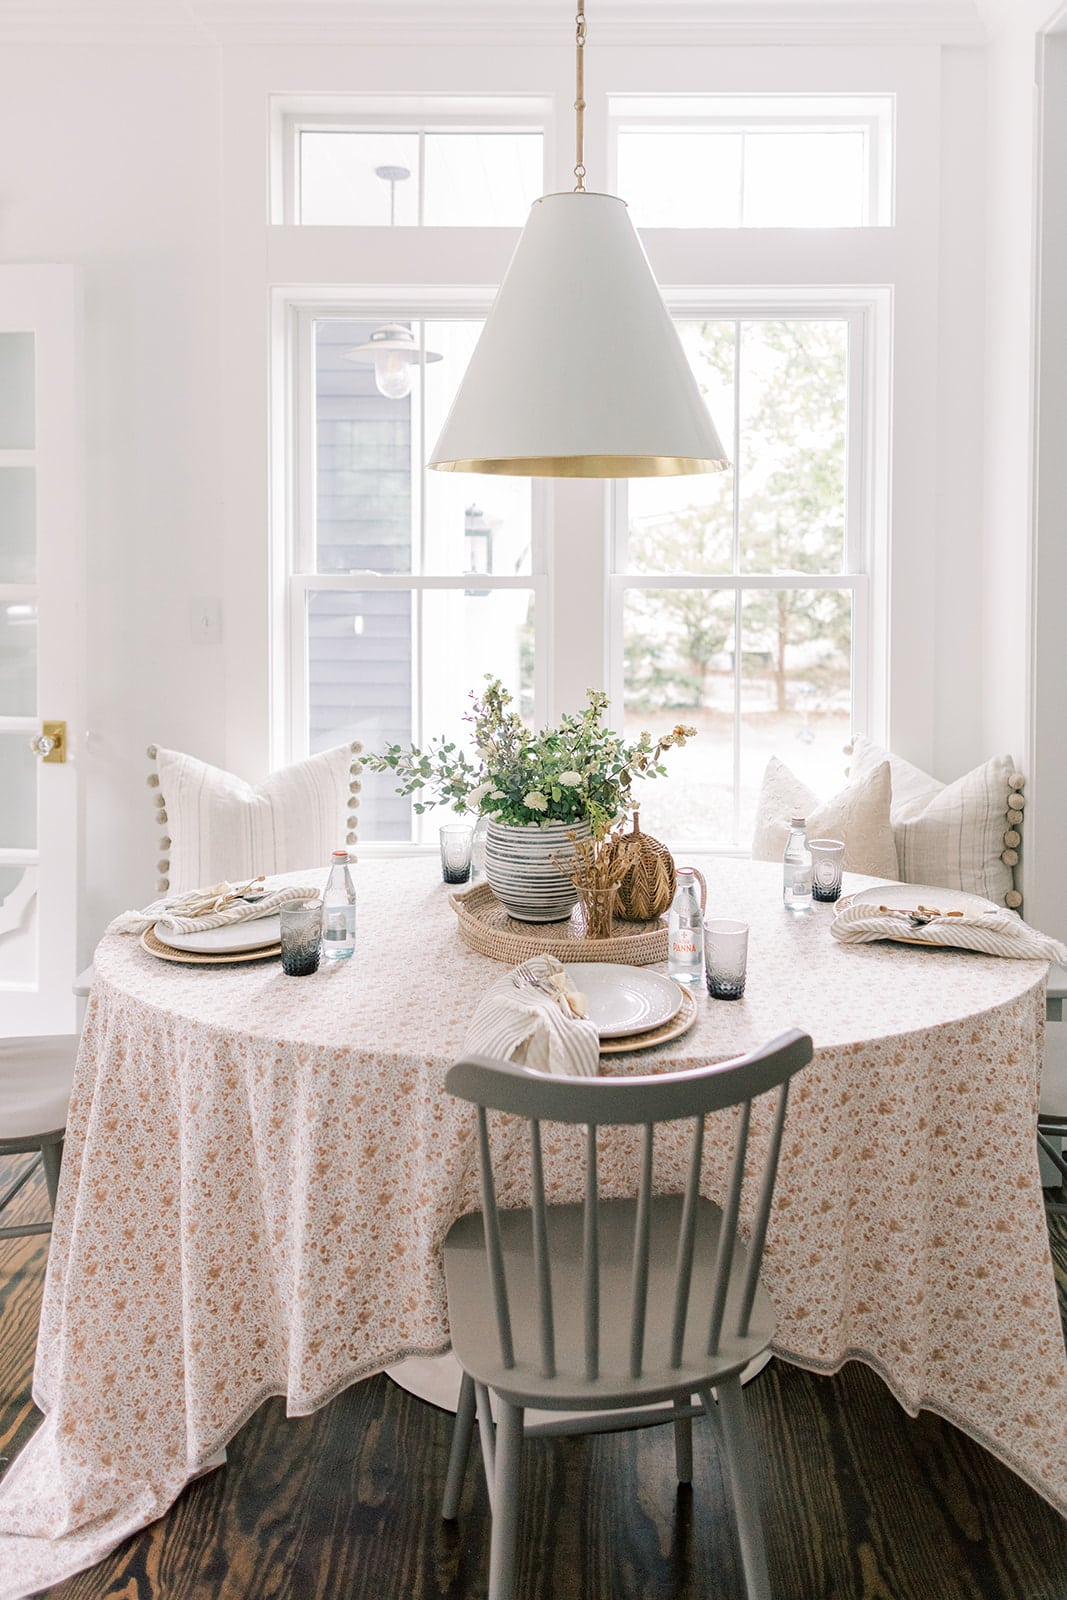 New England home tour kitchen cottage style breakfast nook